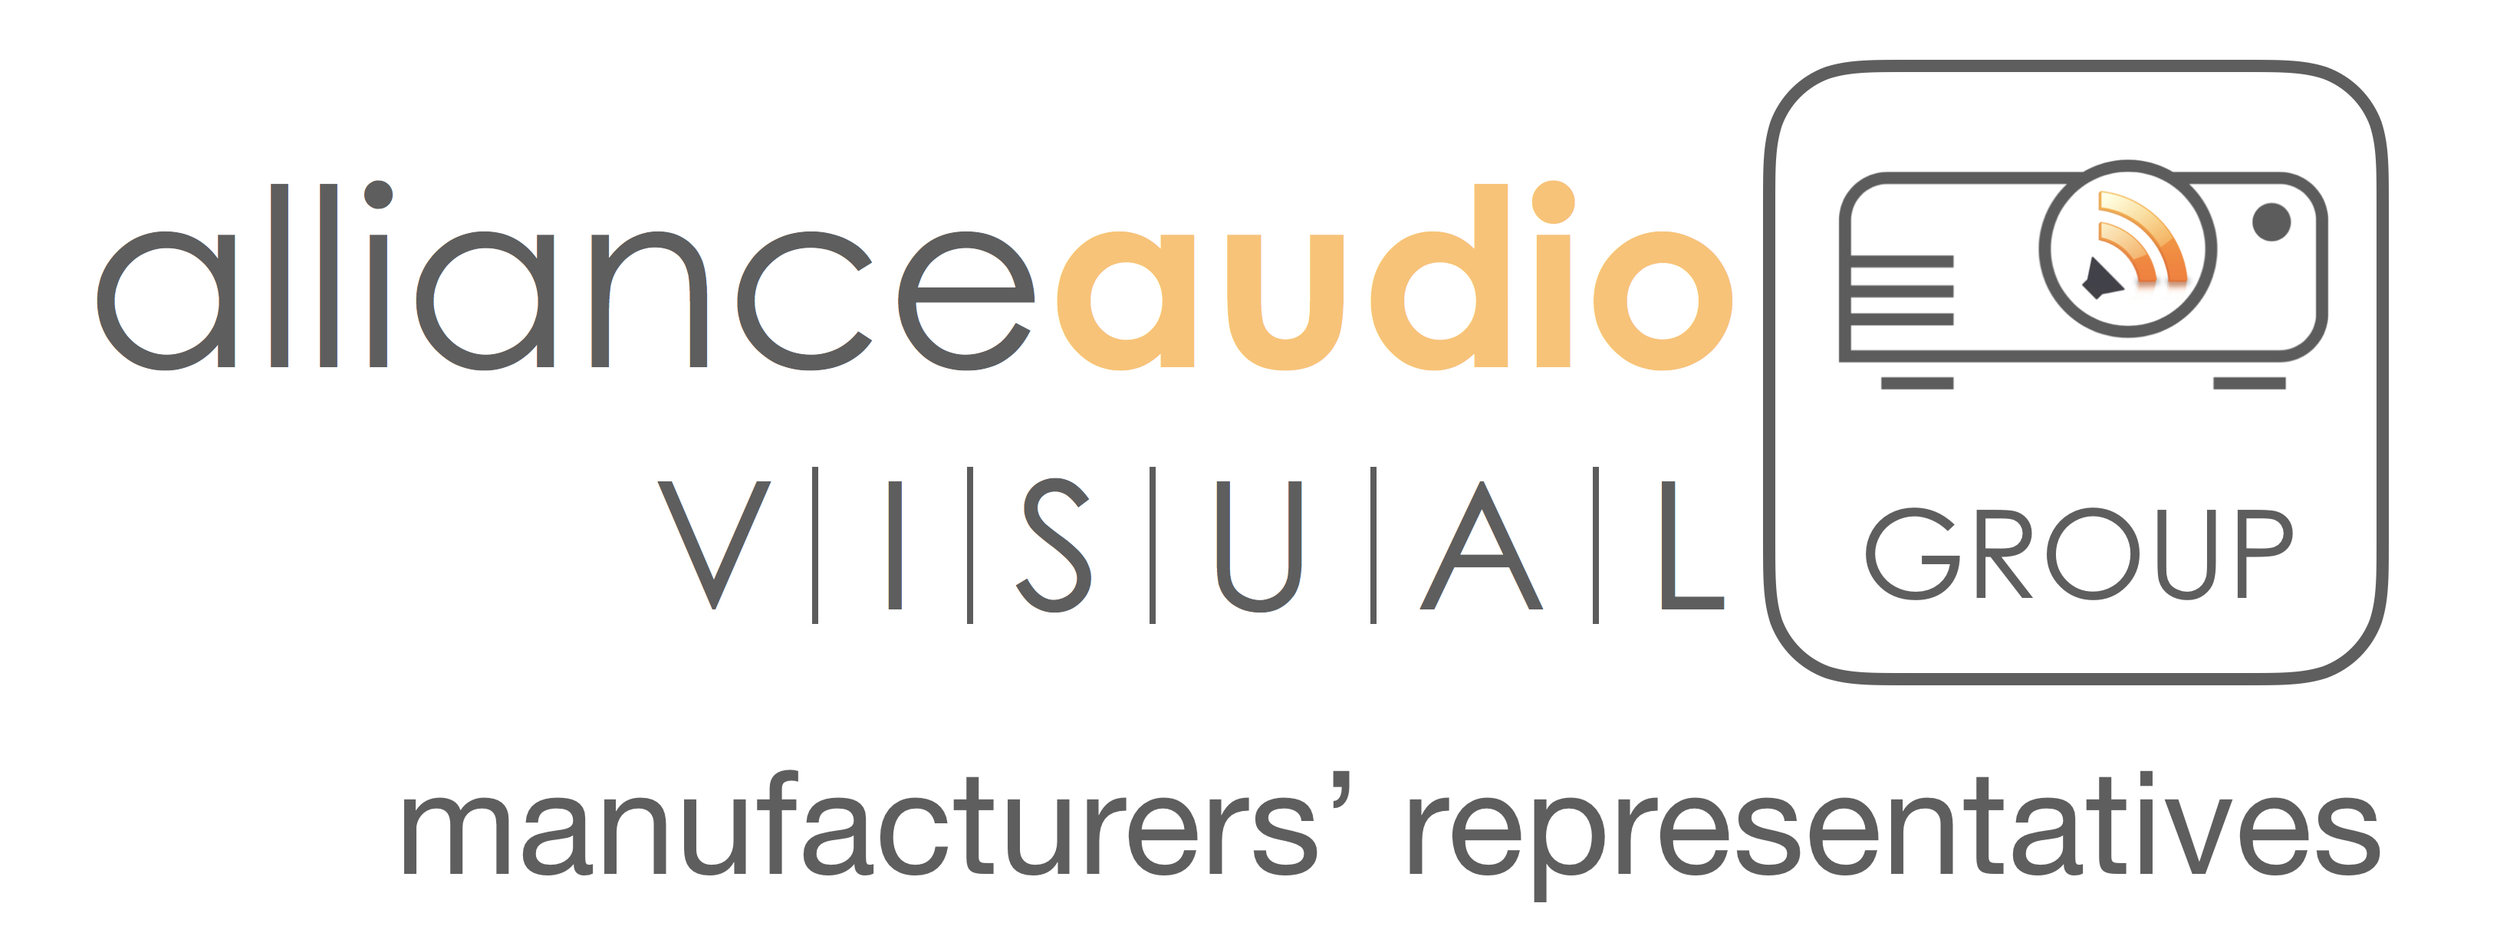 Mf Group Alliance Audio Visual Group